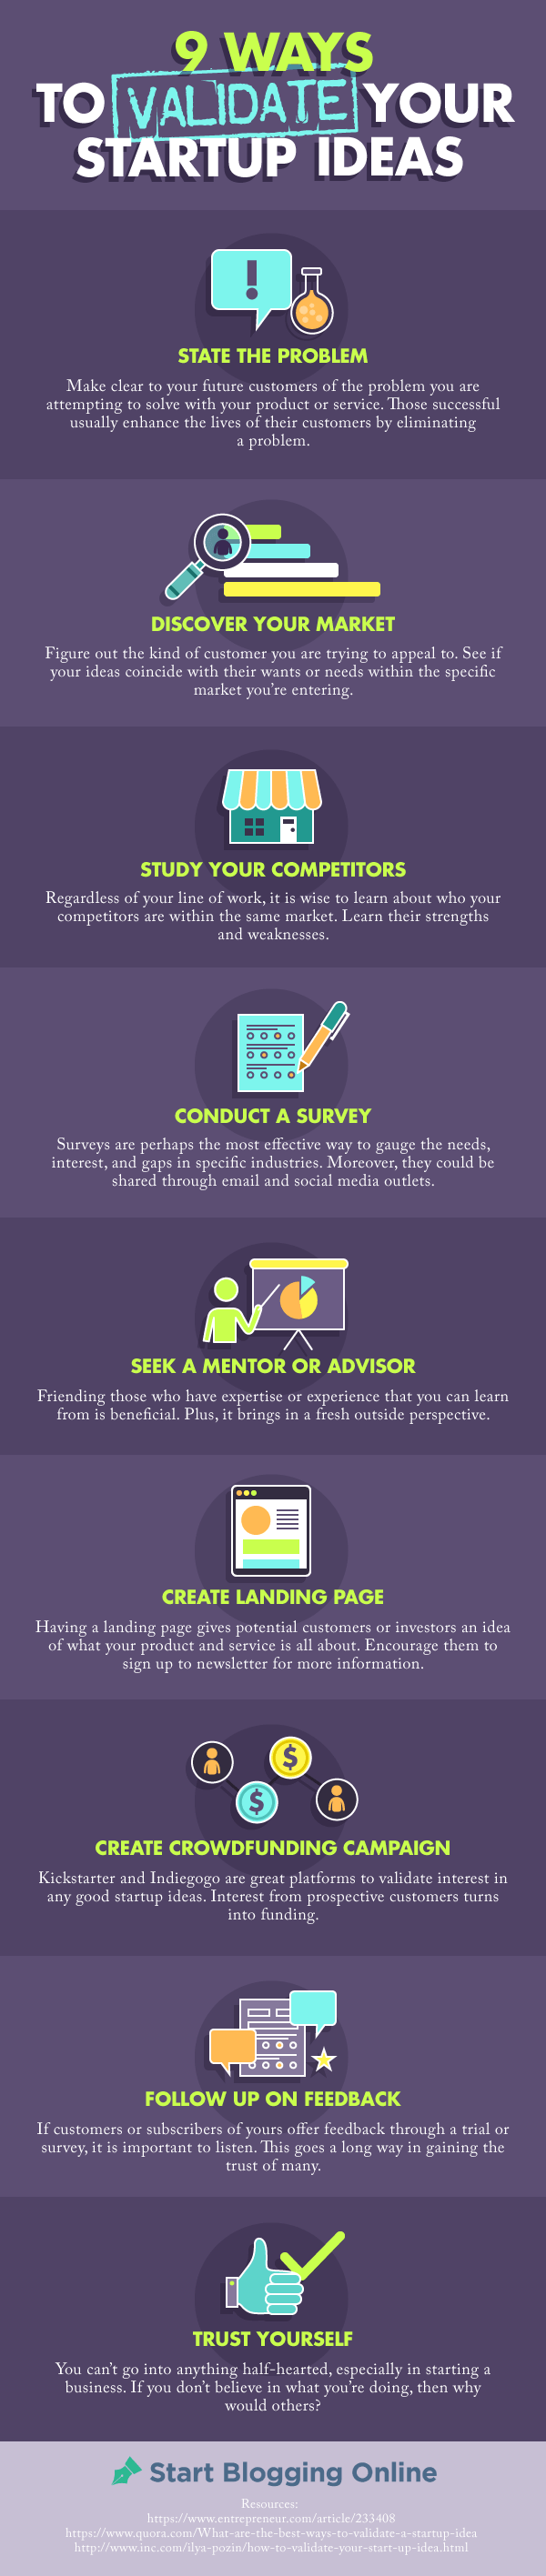 Infographic: 9 Ways to Validate Your Startup Ideas